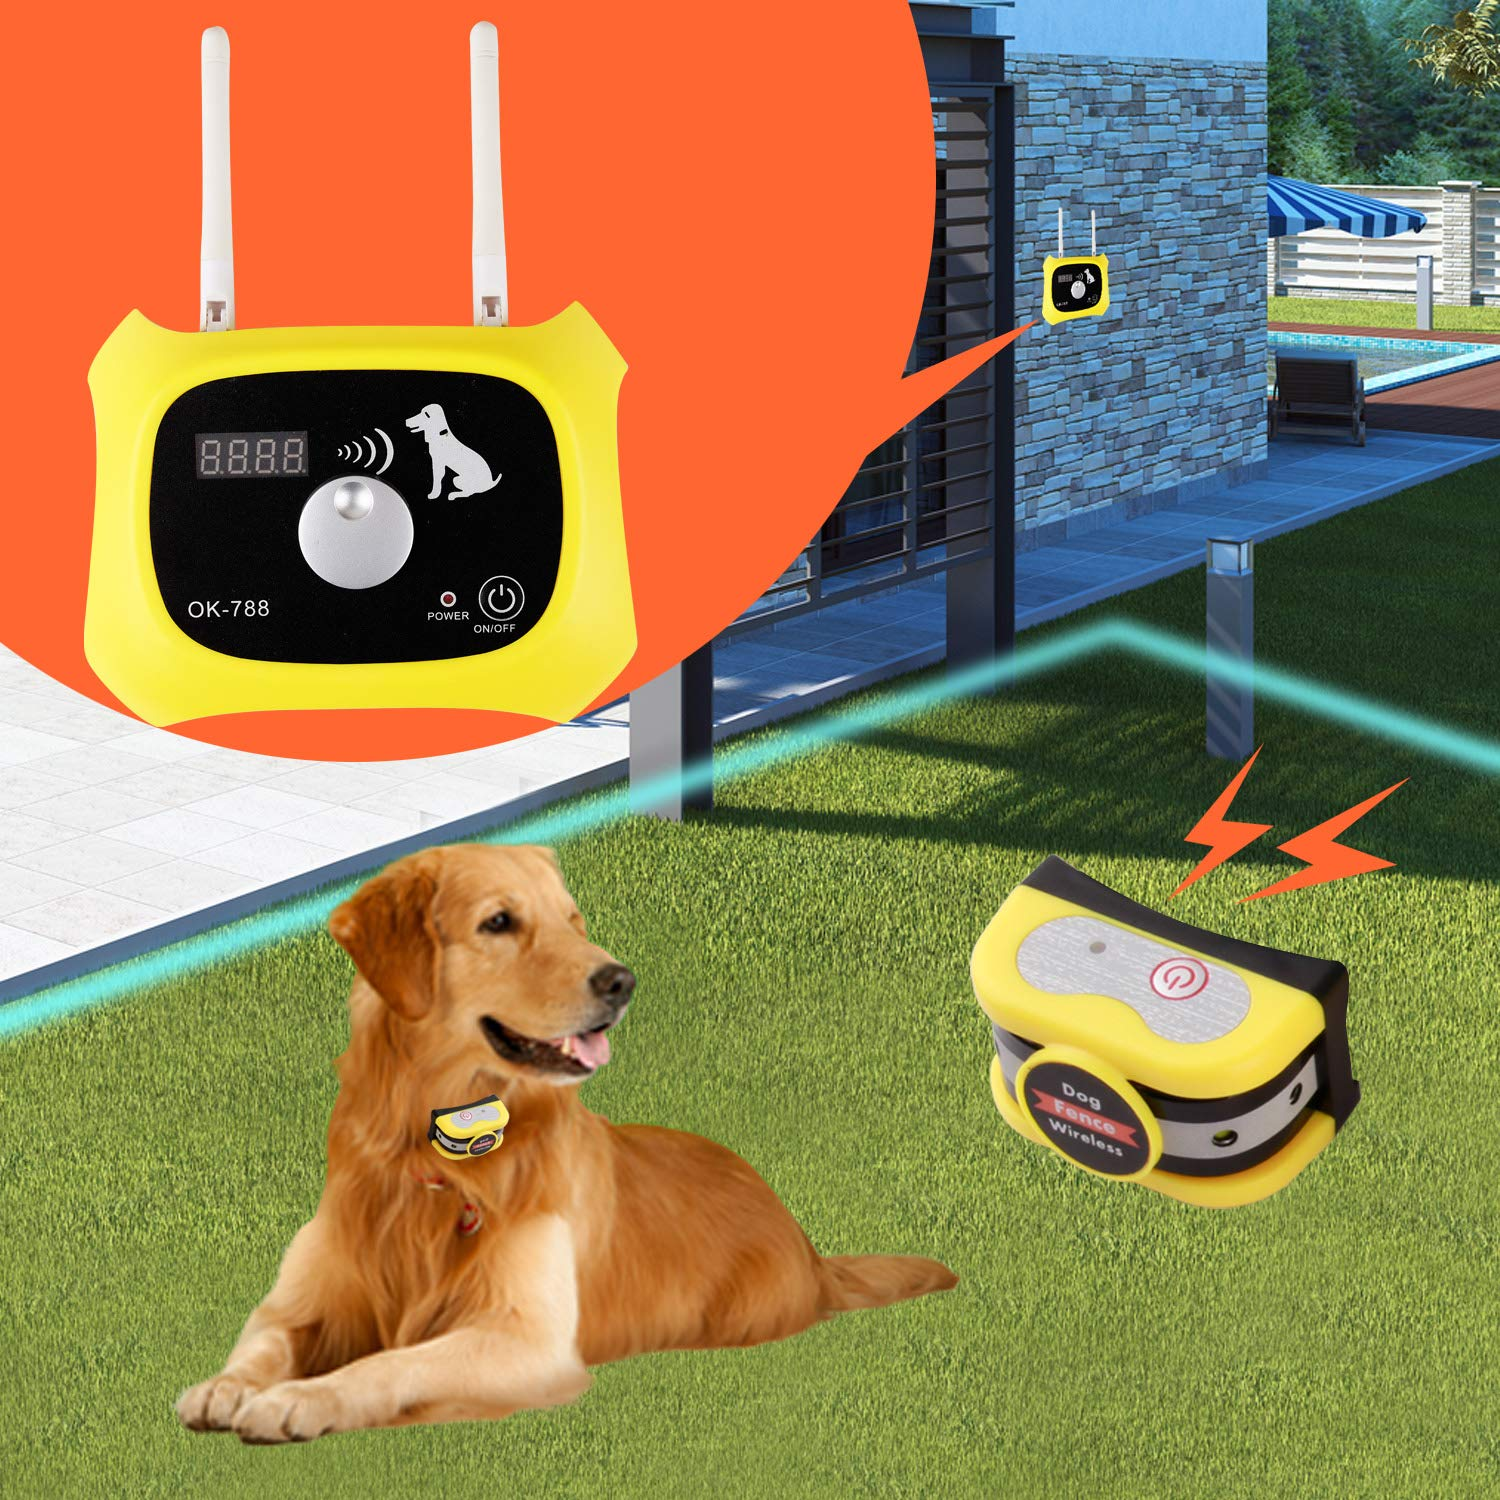 Wireless Dog Fence Electric Pet Containment System, Safe Effective No Randomly Shock Design, Adjustable Control Range 1000 Feet & Display Distance, Rechargeable Waterproof IPX7 Collar (2 Dog System) by JUSTSTART (Image #3)